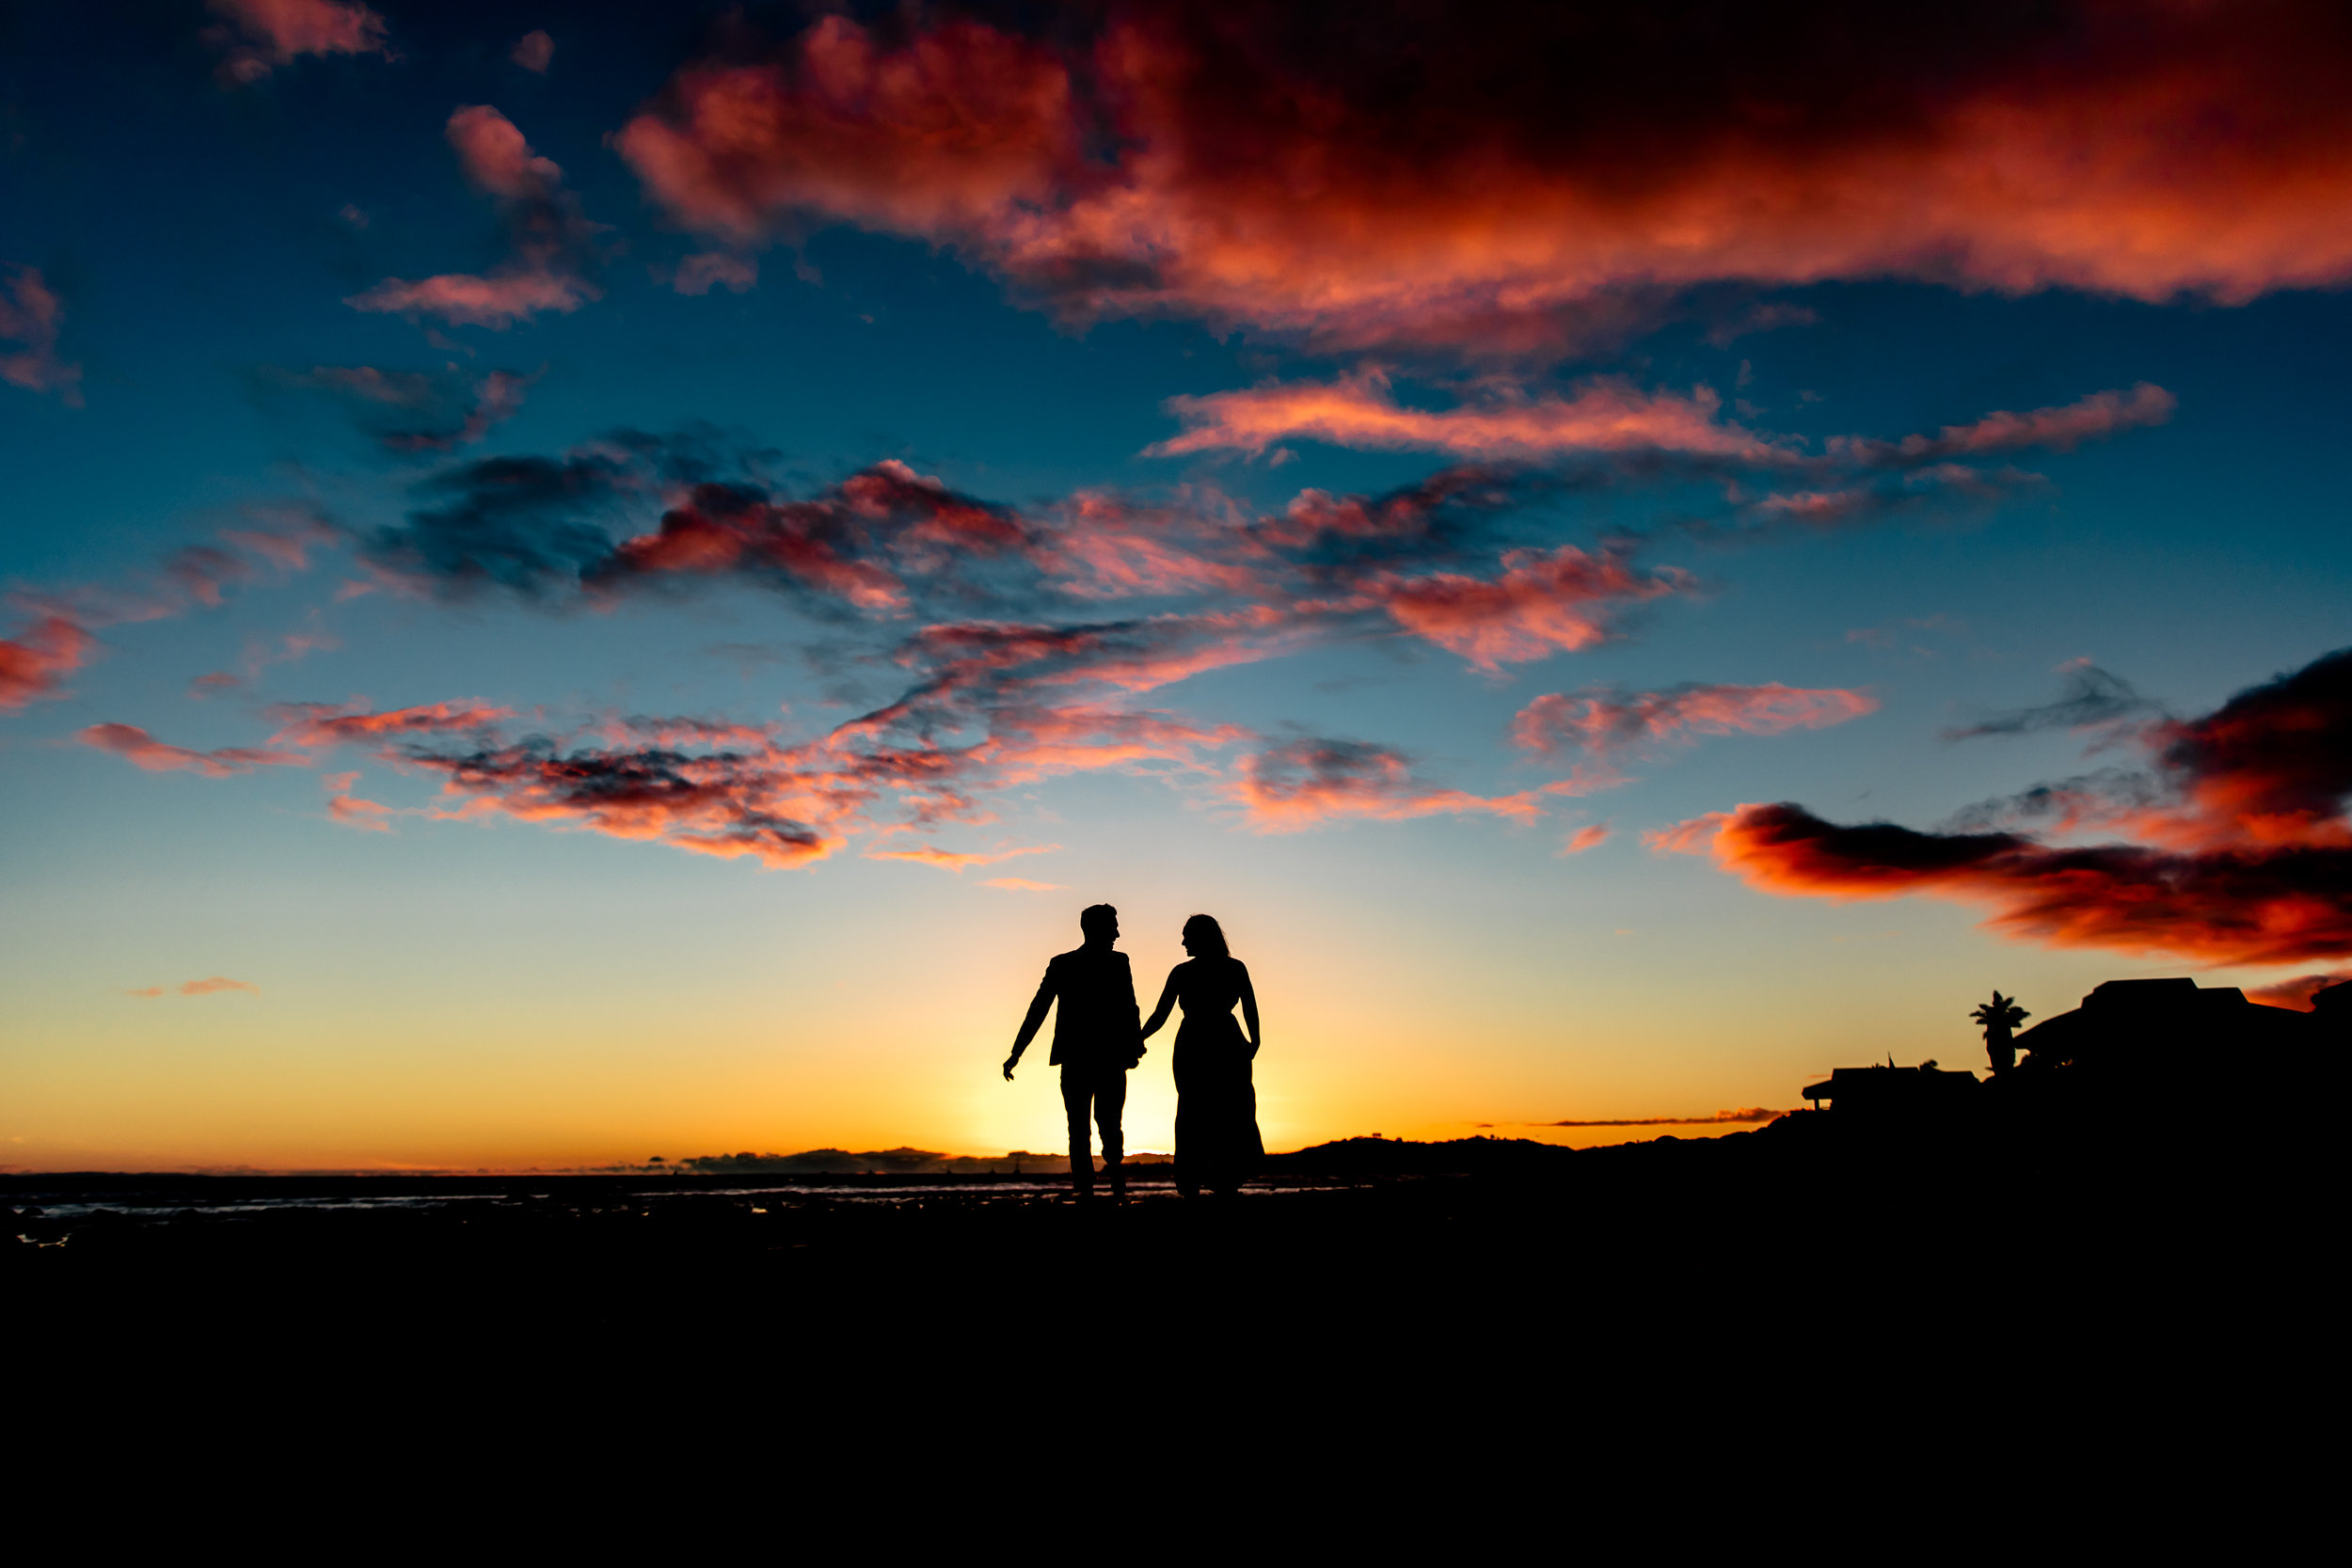 santabarbarawedding.com | Rewind Photography | Butterfly Beach | Engaged Couple on Beach at Sunset